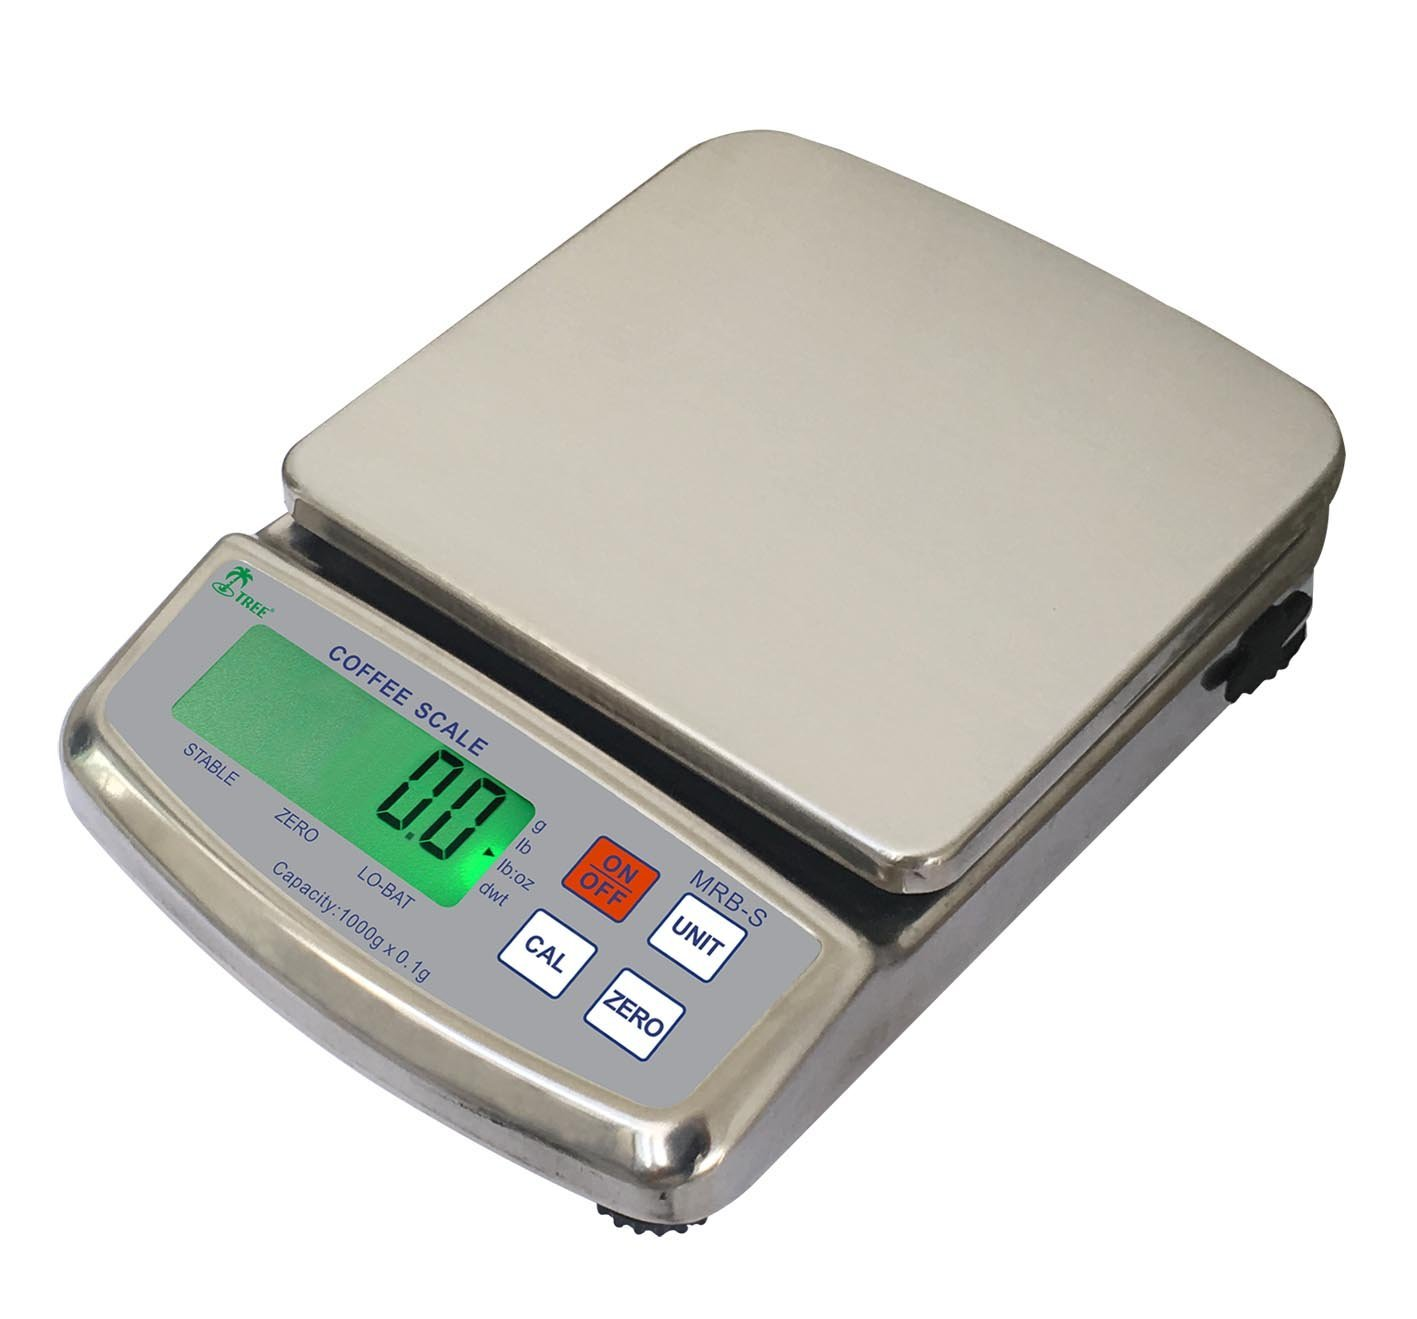 Tree MRB-S-601 Stainless Compact Weigh Scale 600g x 0.1g